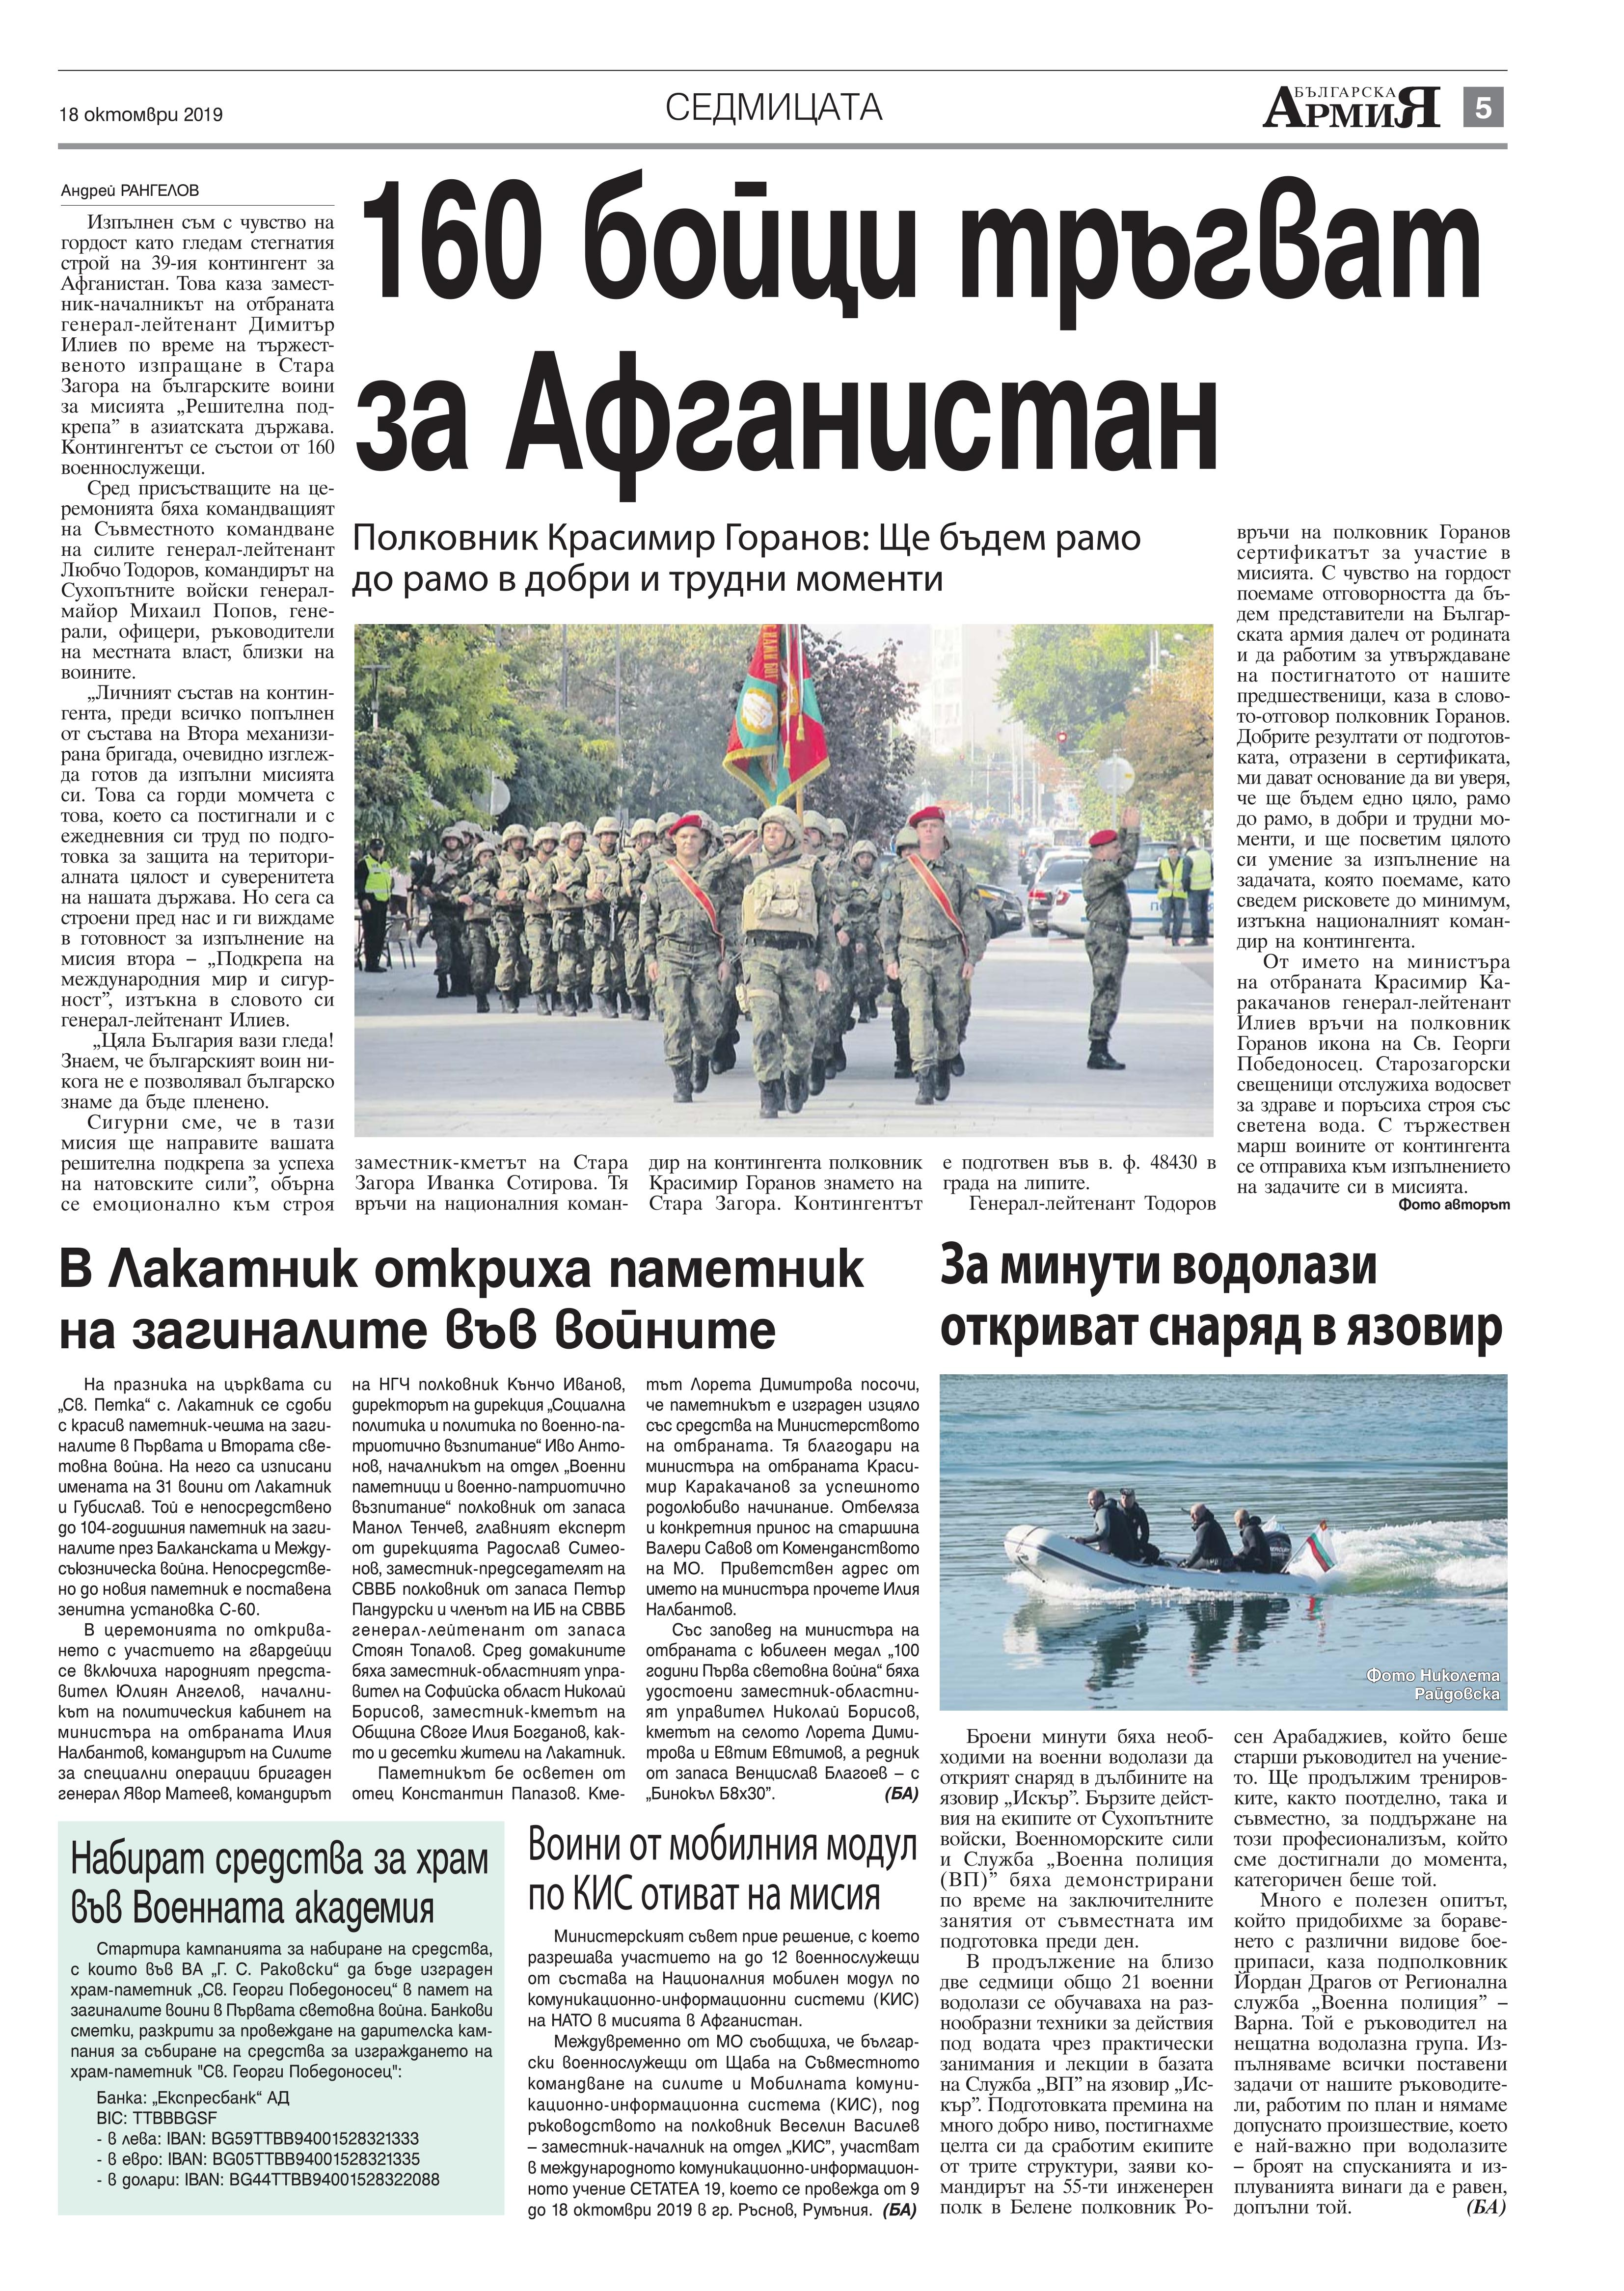 https://www.armymedia.bg/wp-content/uploads/2015/06/05.page1_-108.jpg